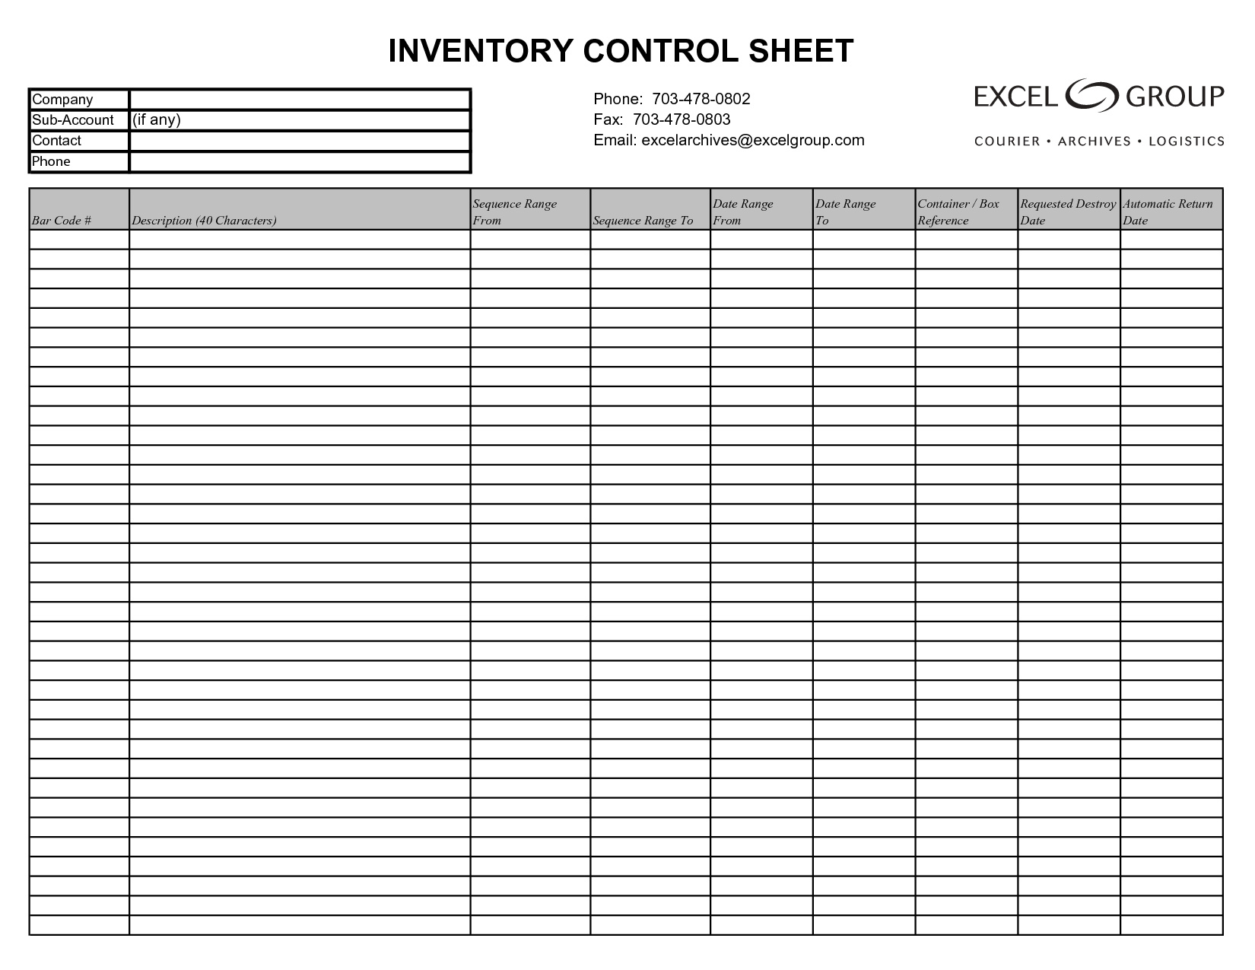 Inventory Spreadsheet Template Excel Product Tracking | My Intended For Inventory Tracking Sheet Templates